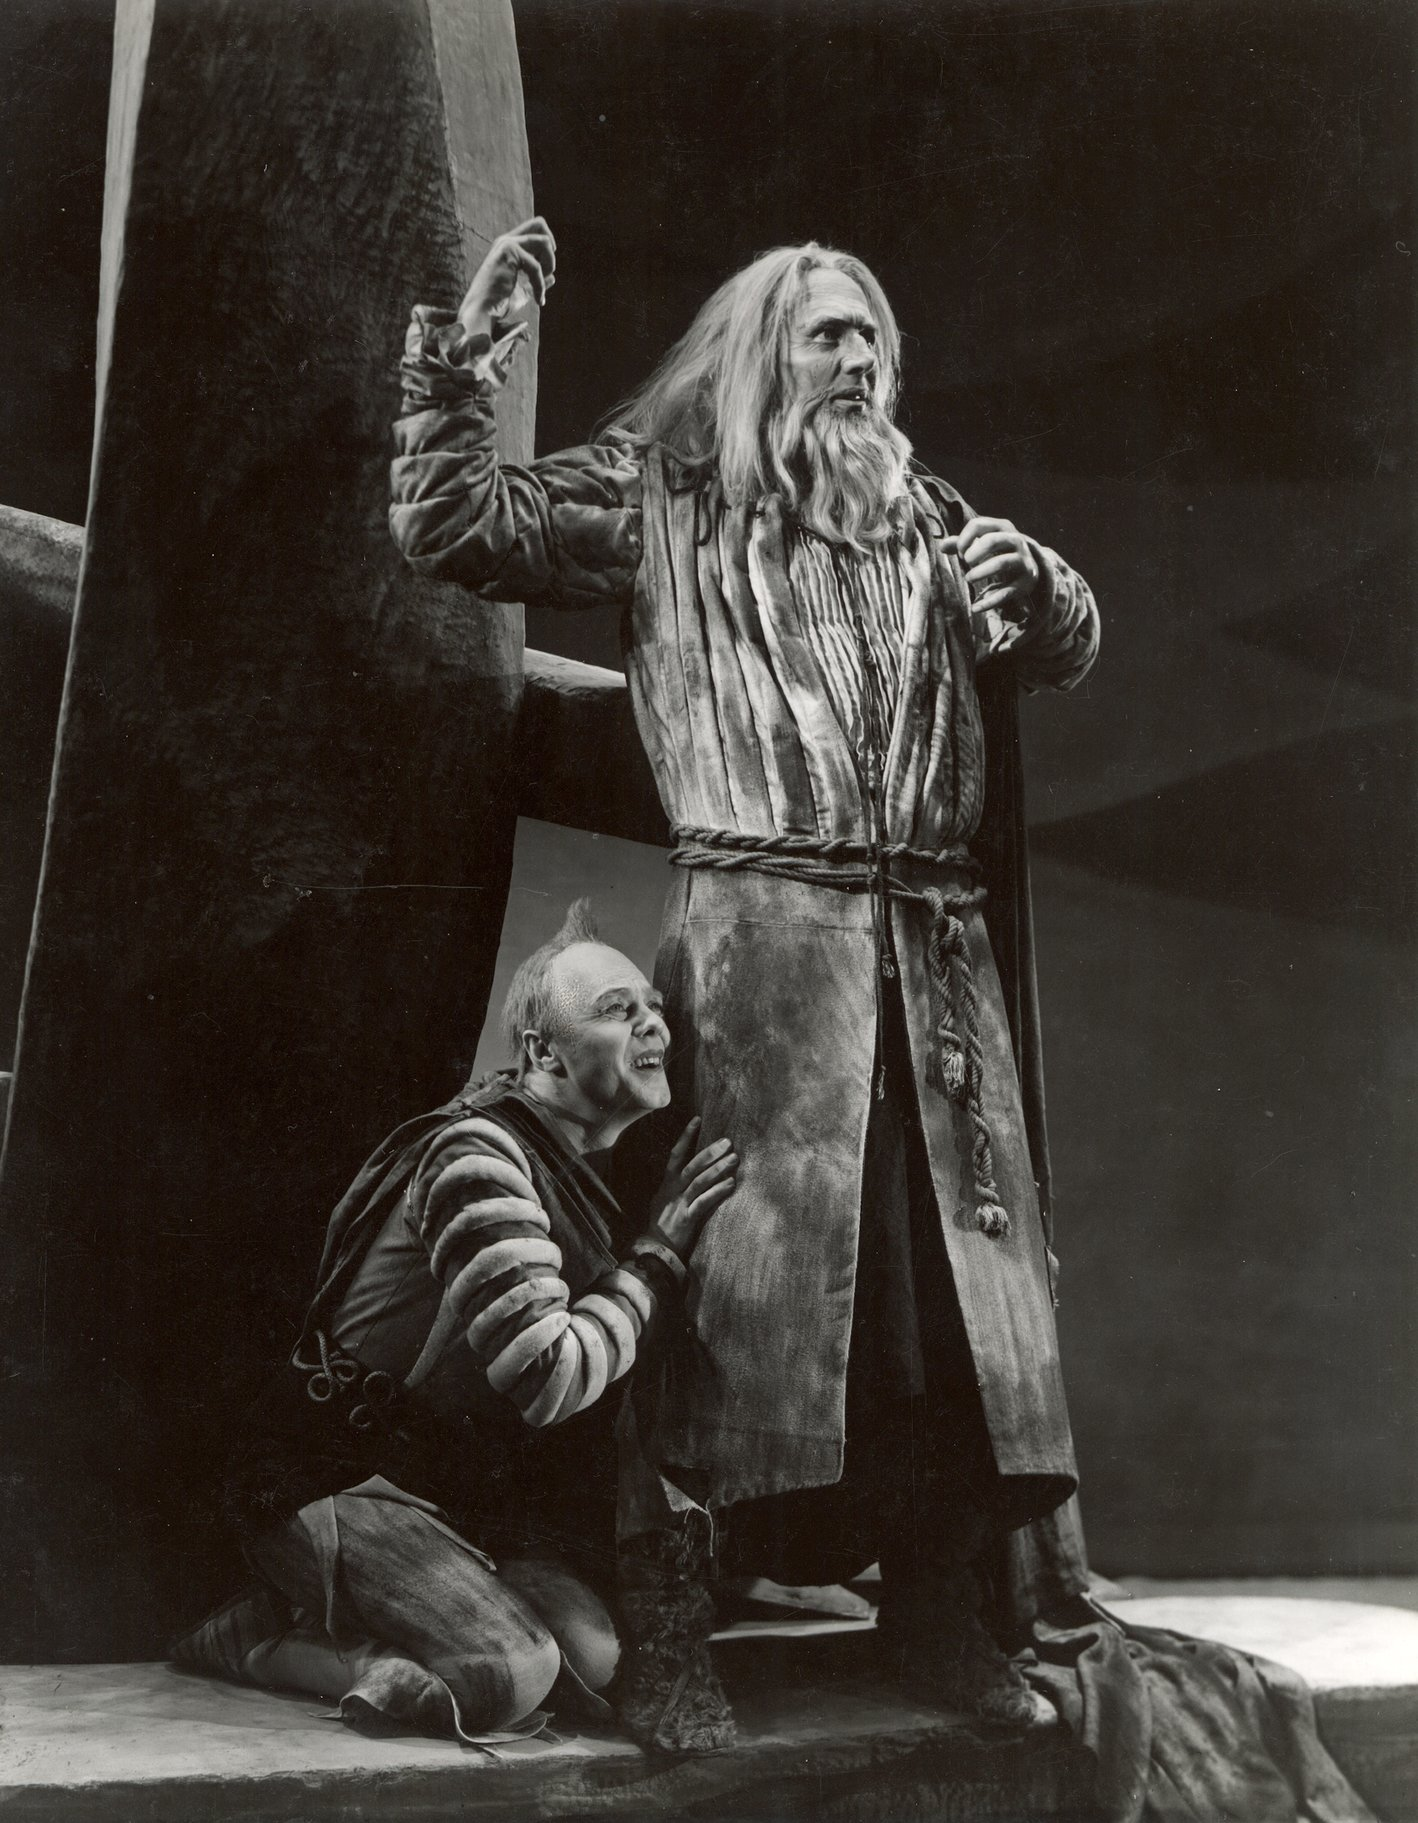 A man kneels at the side of a man in a long coat.